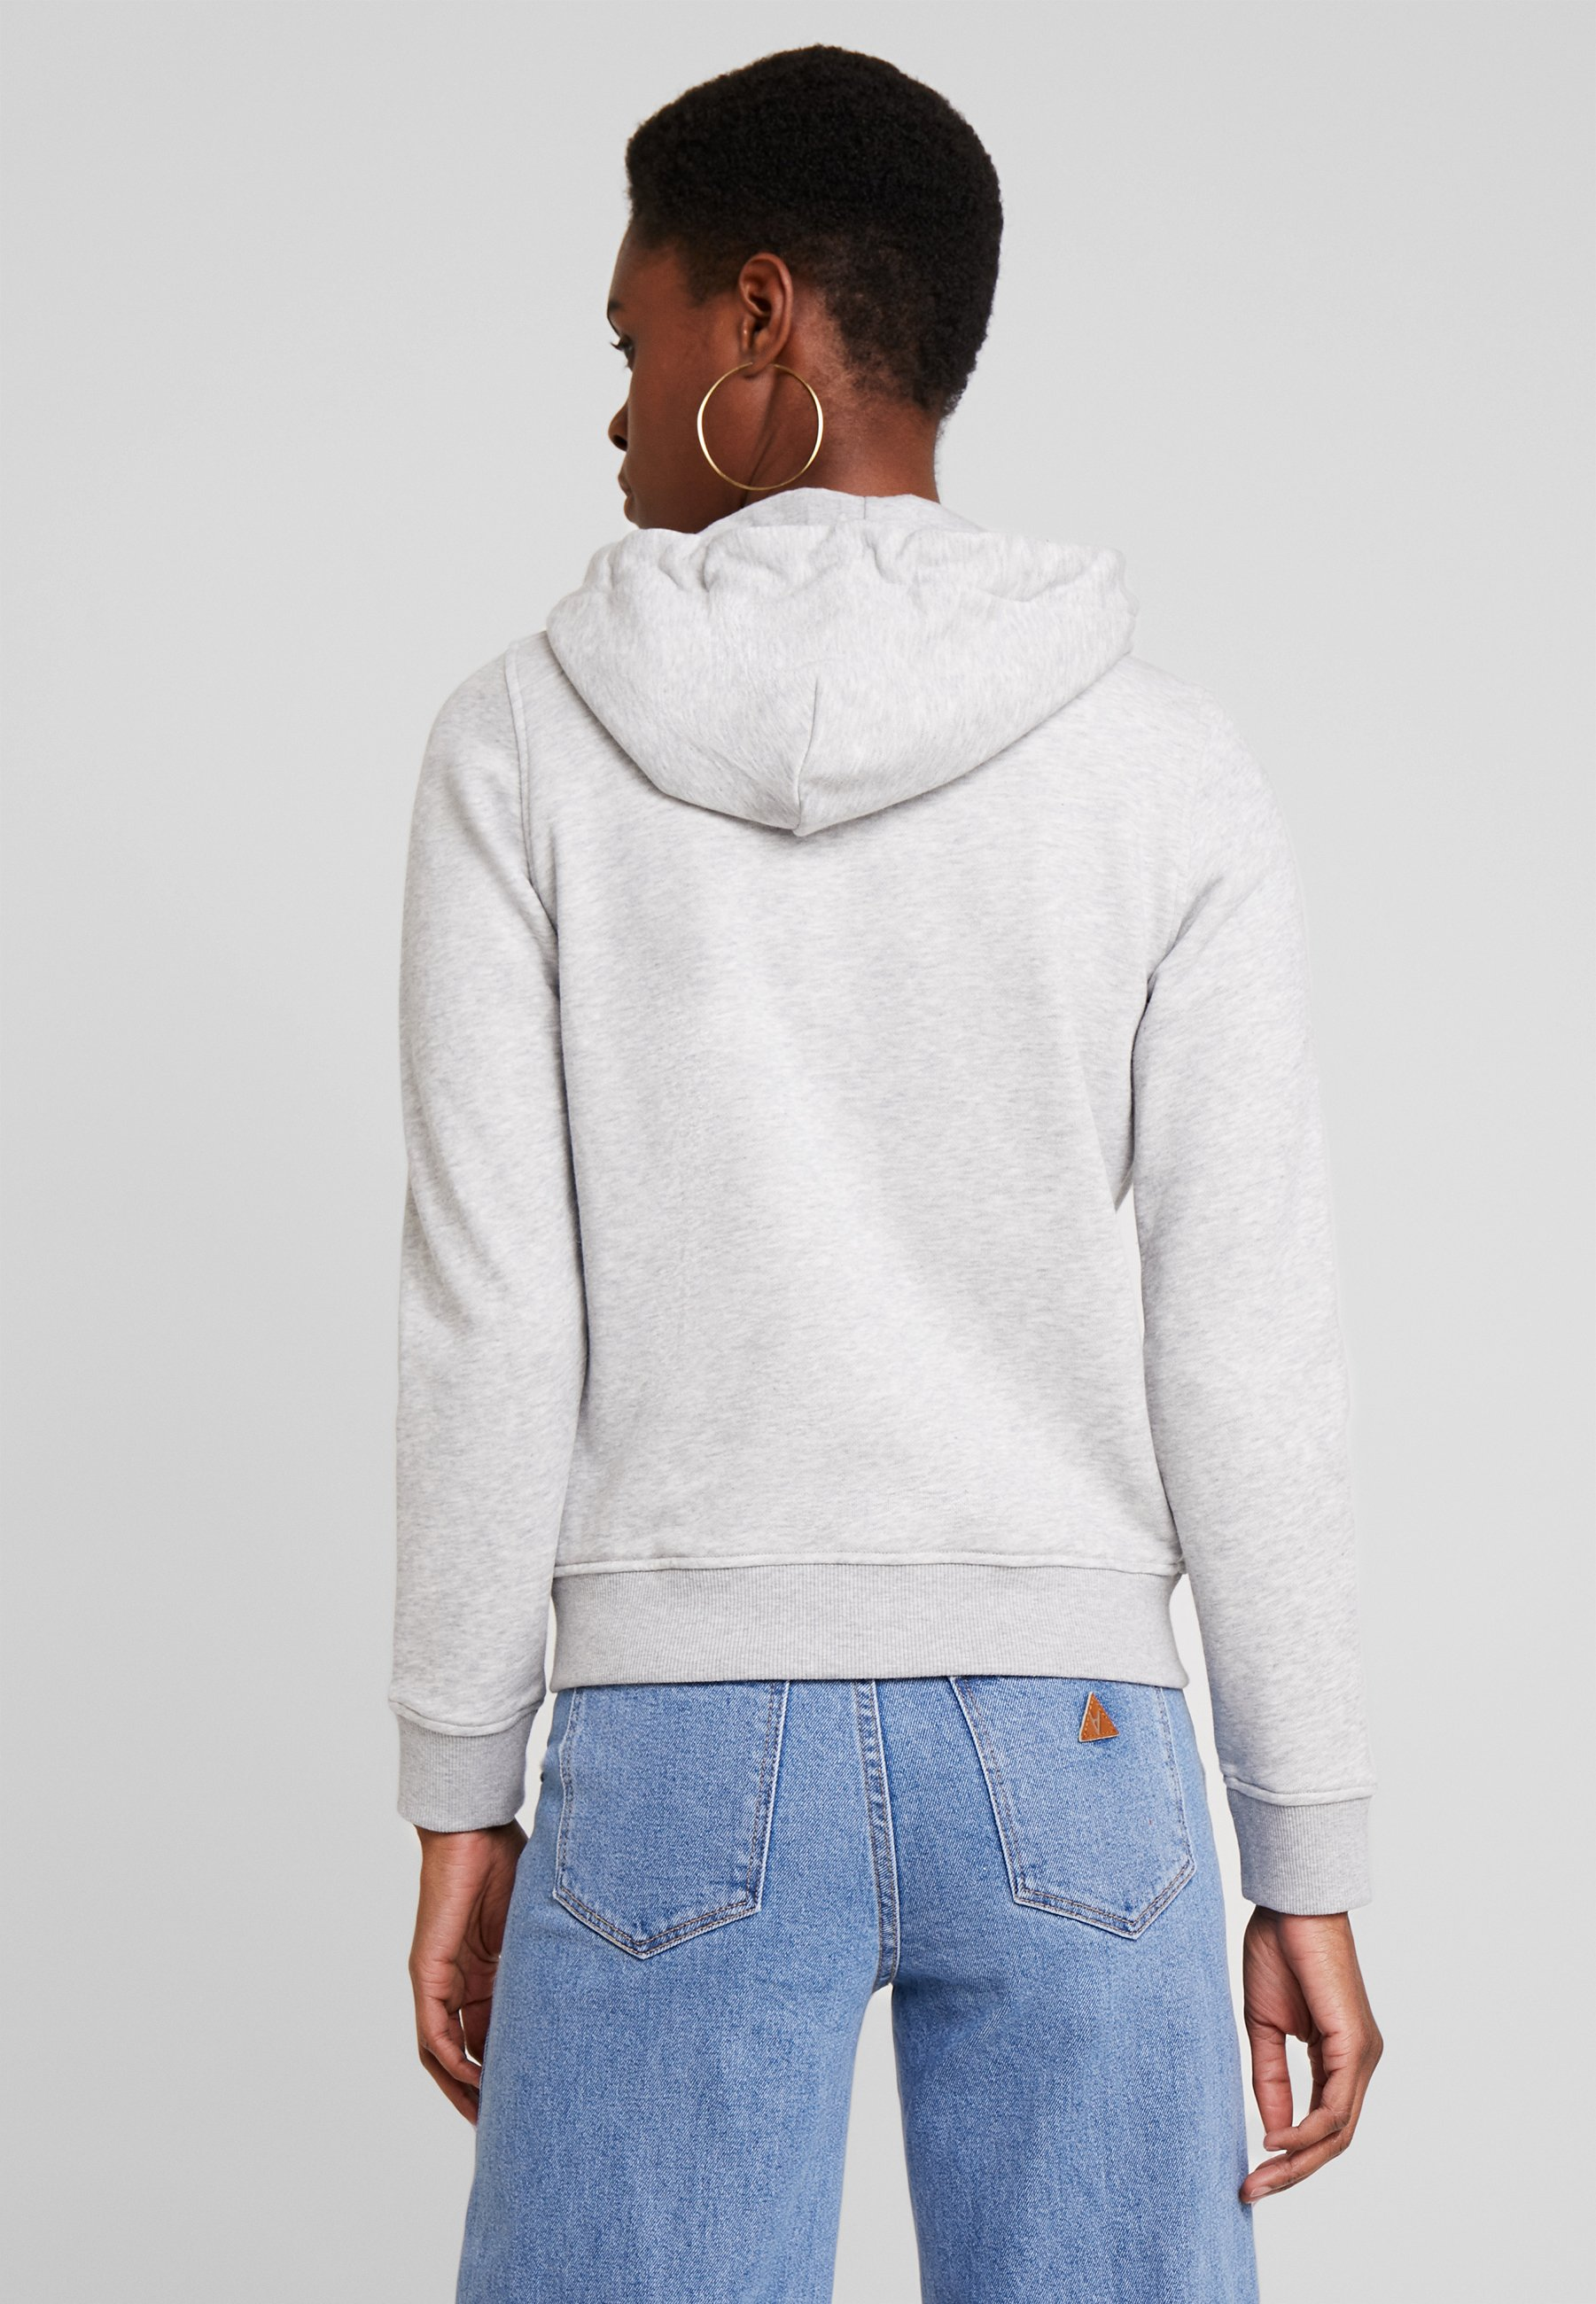 Melange Full À Gant Zip Light HoodieSweat Grey Capuche 1TlFJ3uKc